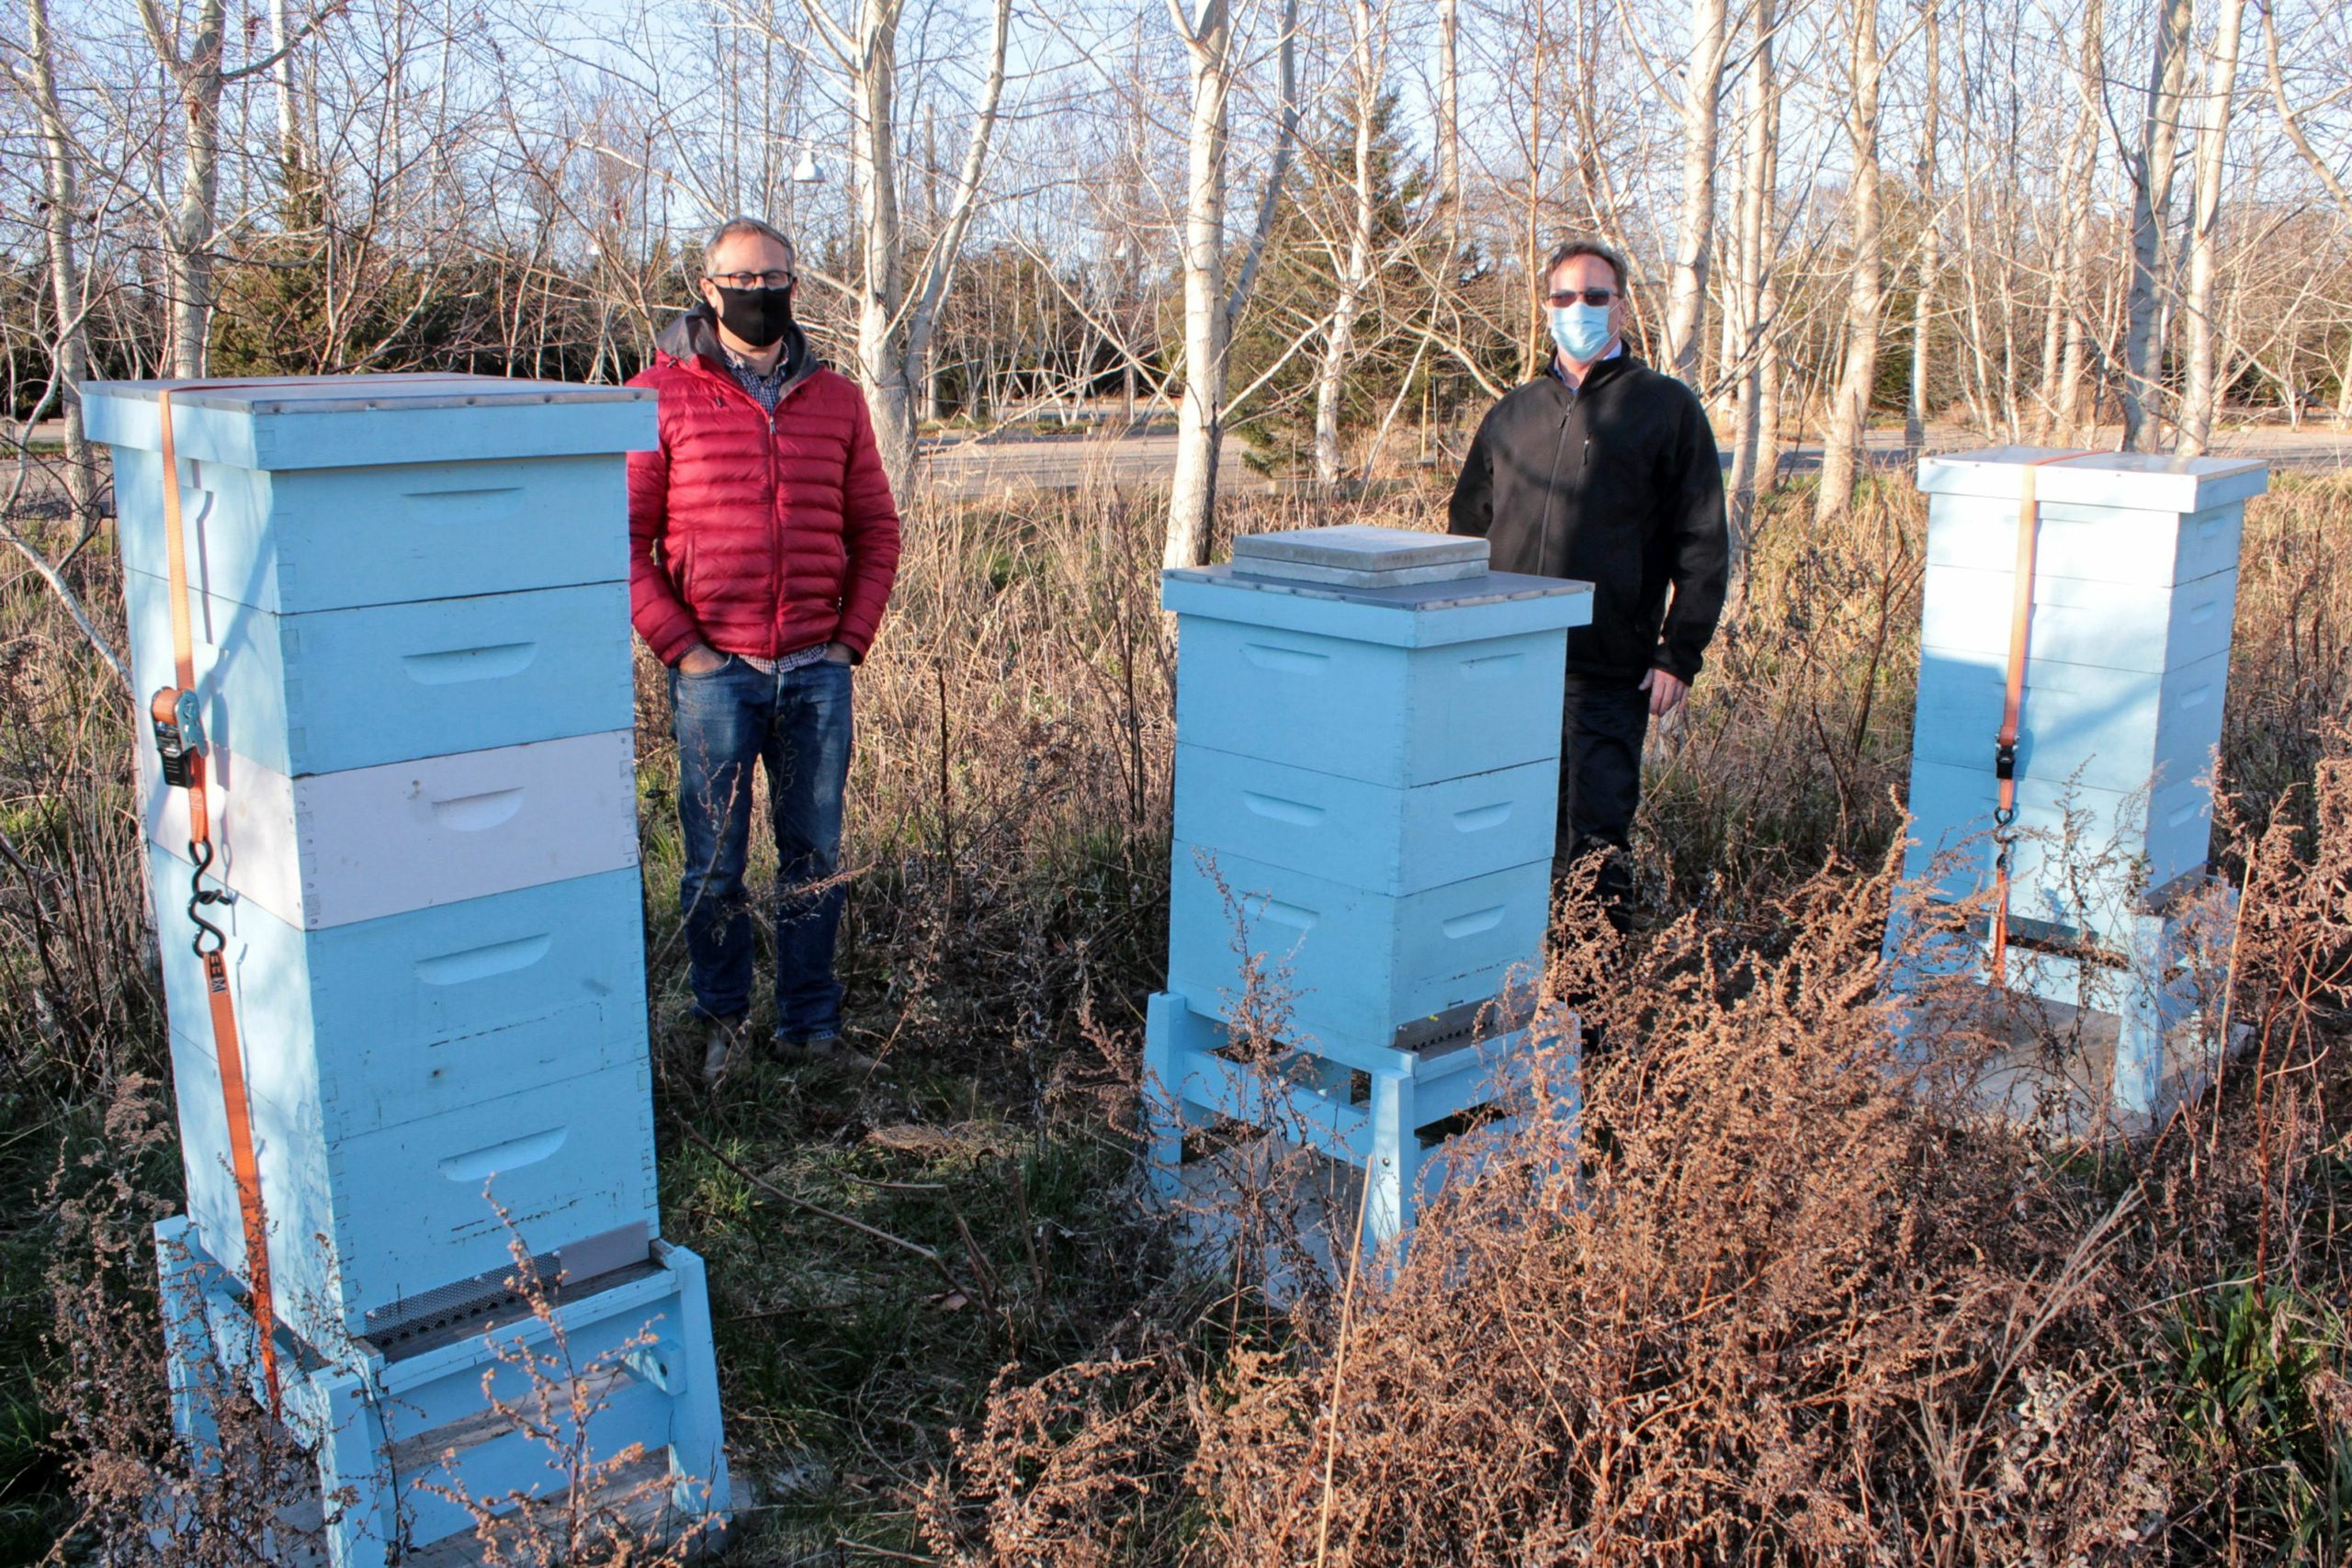 Busy bees at the Parrish Art Museum's hives.